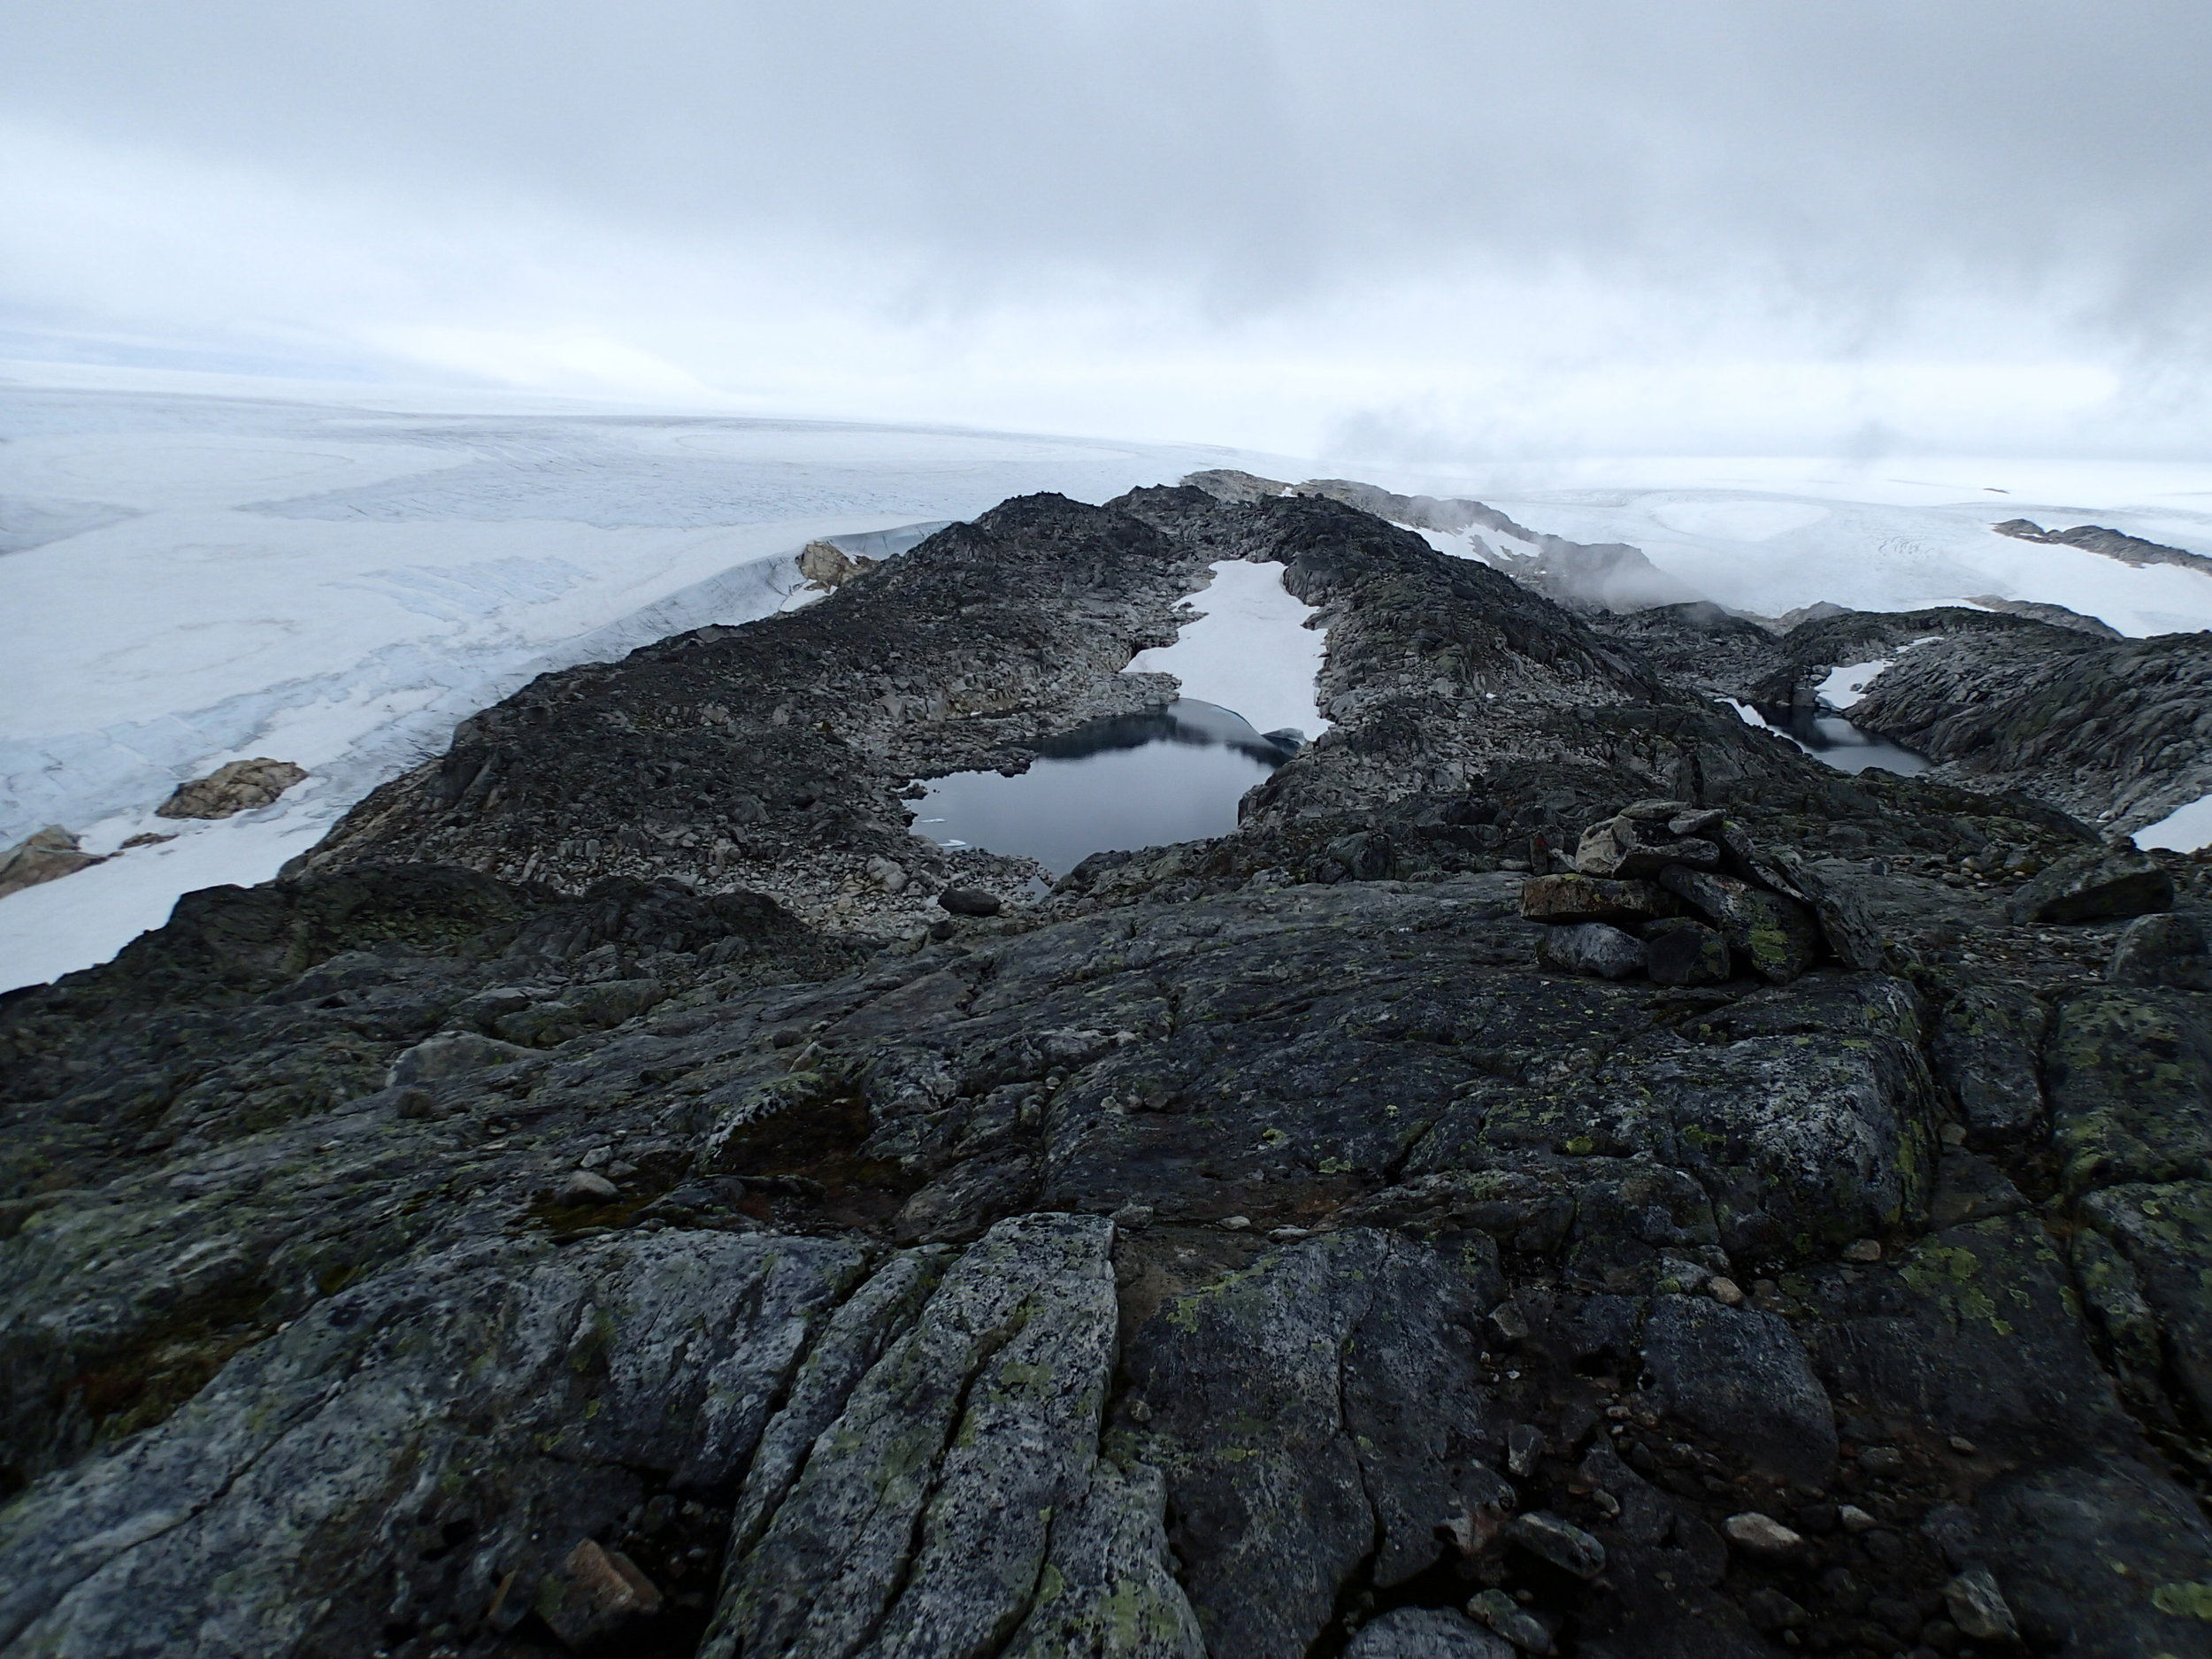 Folgefonna Glacier, Norway (2014)  August 2014, I hiked to Folgefonna Glacier, on the West Coast of Norway. Similar to my island research of exploring shorelines, this residency I explored the glacial rim - where the ice meets rock.